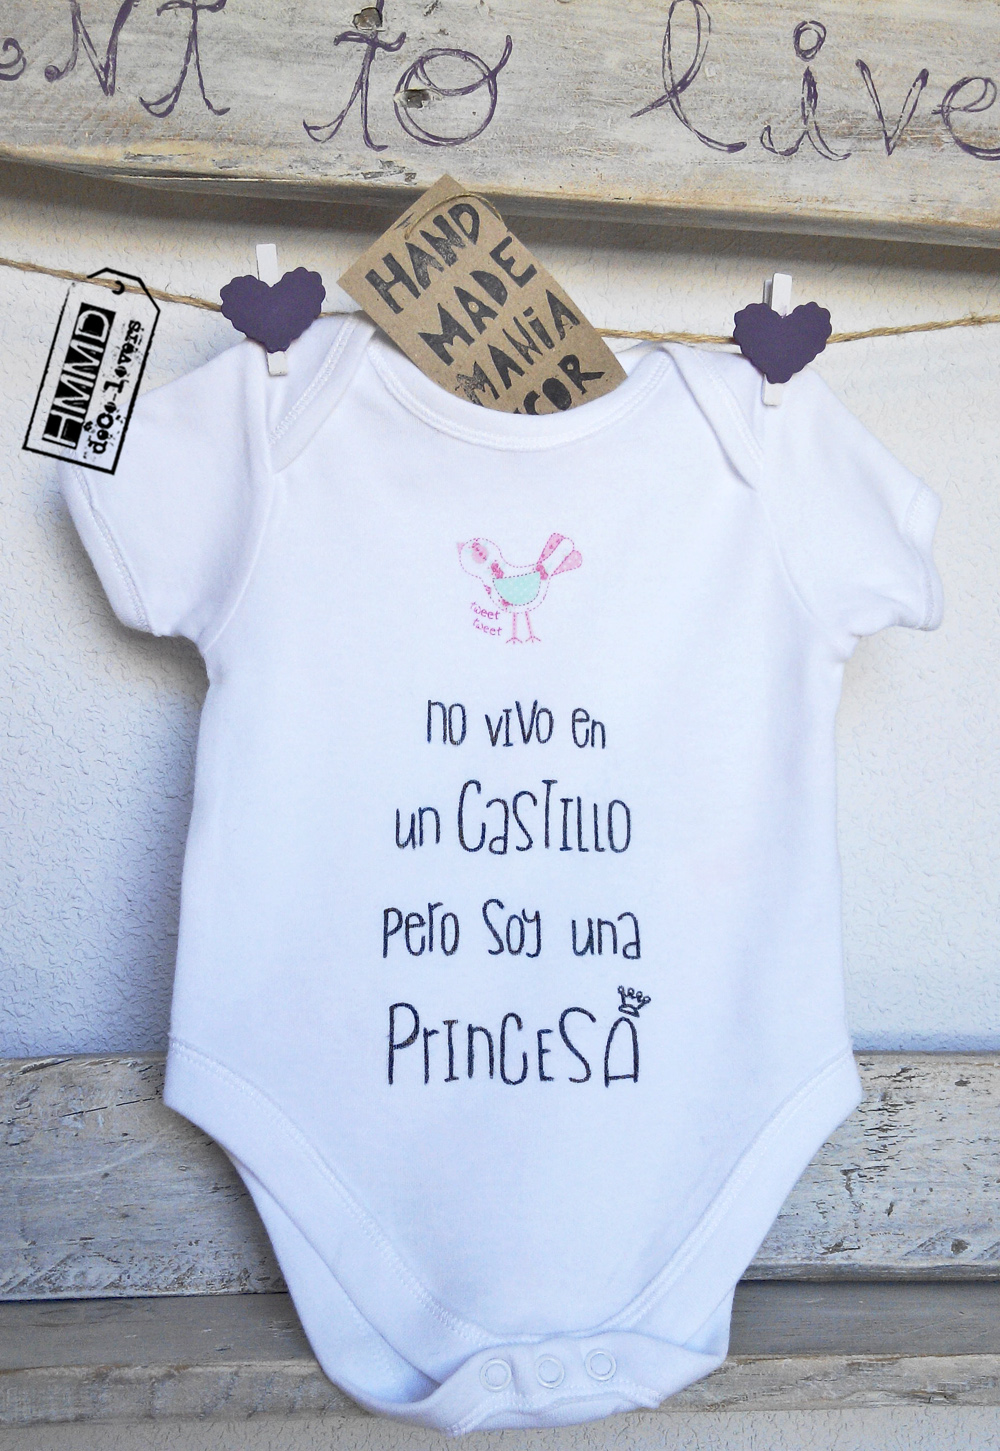 No vivo en un castillo pero soy una princesa. Body con frases para bebés HMMD Handmademaniadecor, regalo para el día de la madre, día del padre o para recién nacido. Baby body suits with phrases by HMMD, ideal for gifts.